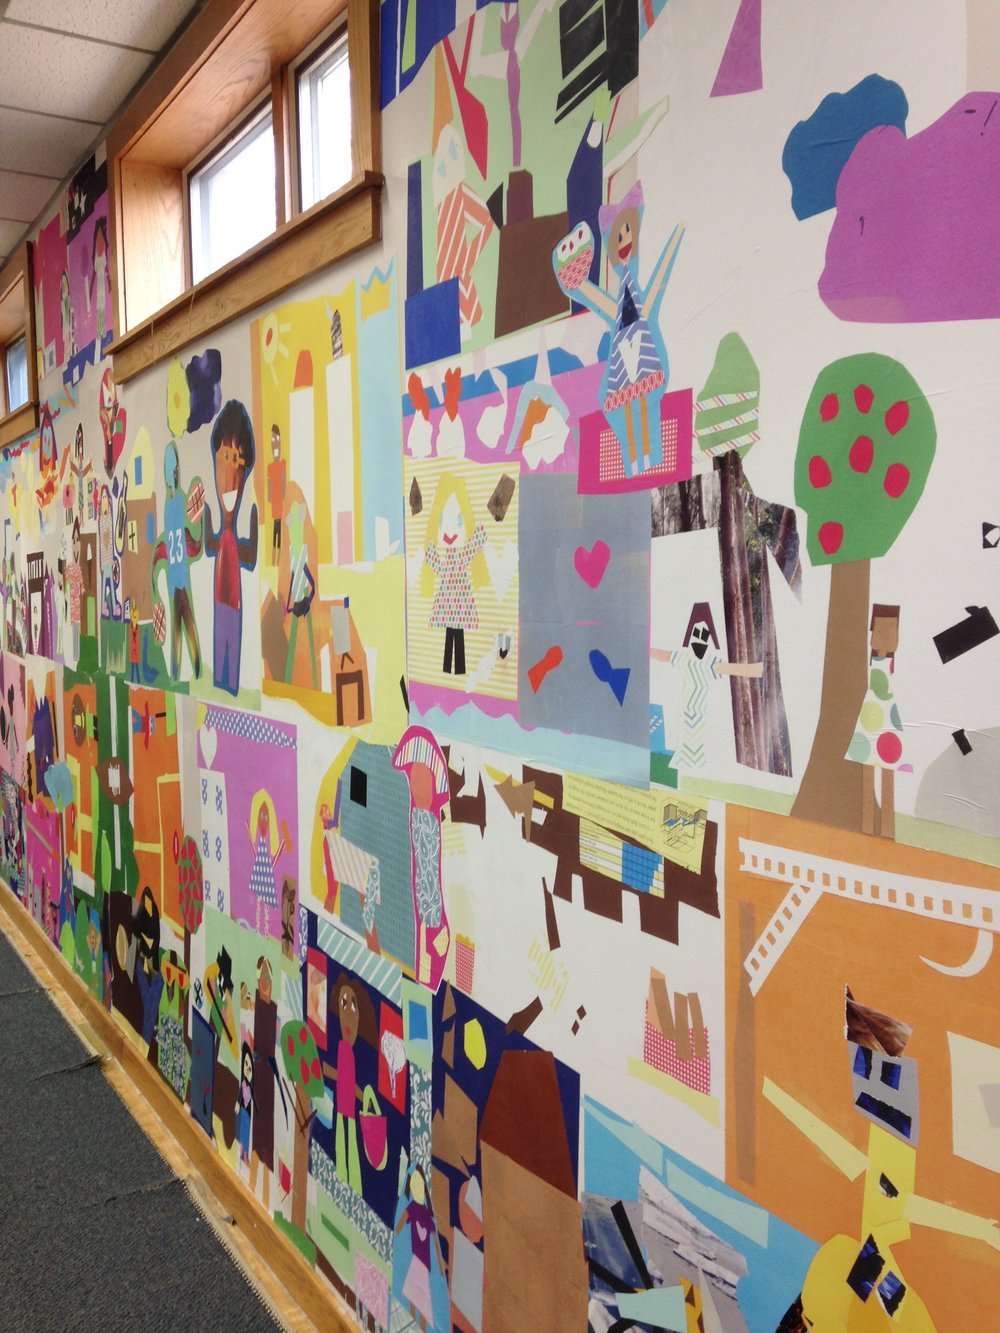 40' wall collage installation / residency collaboration with elementary school 2nd graders at Claxton Elementary School in Asheville